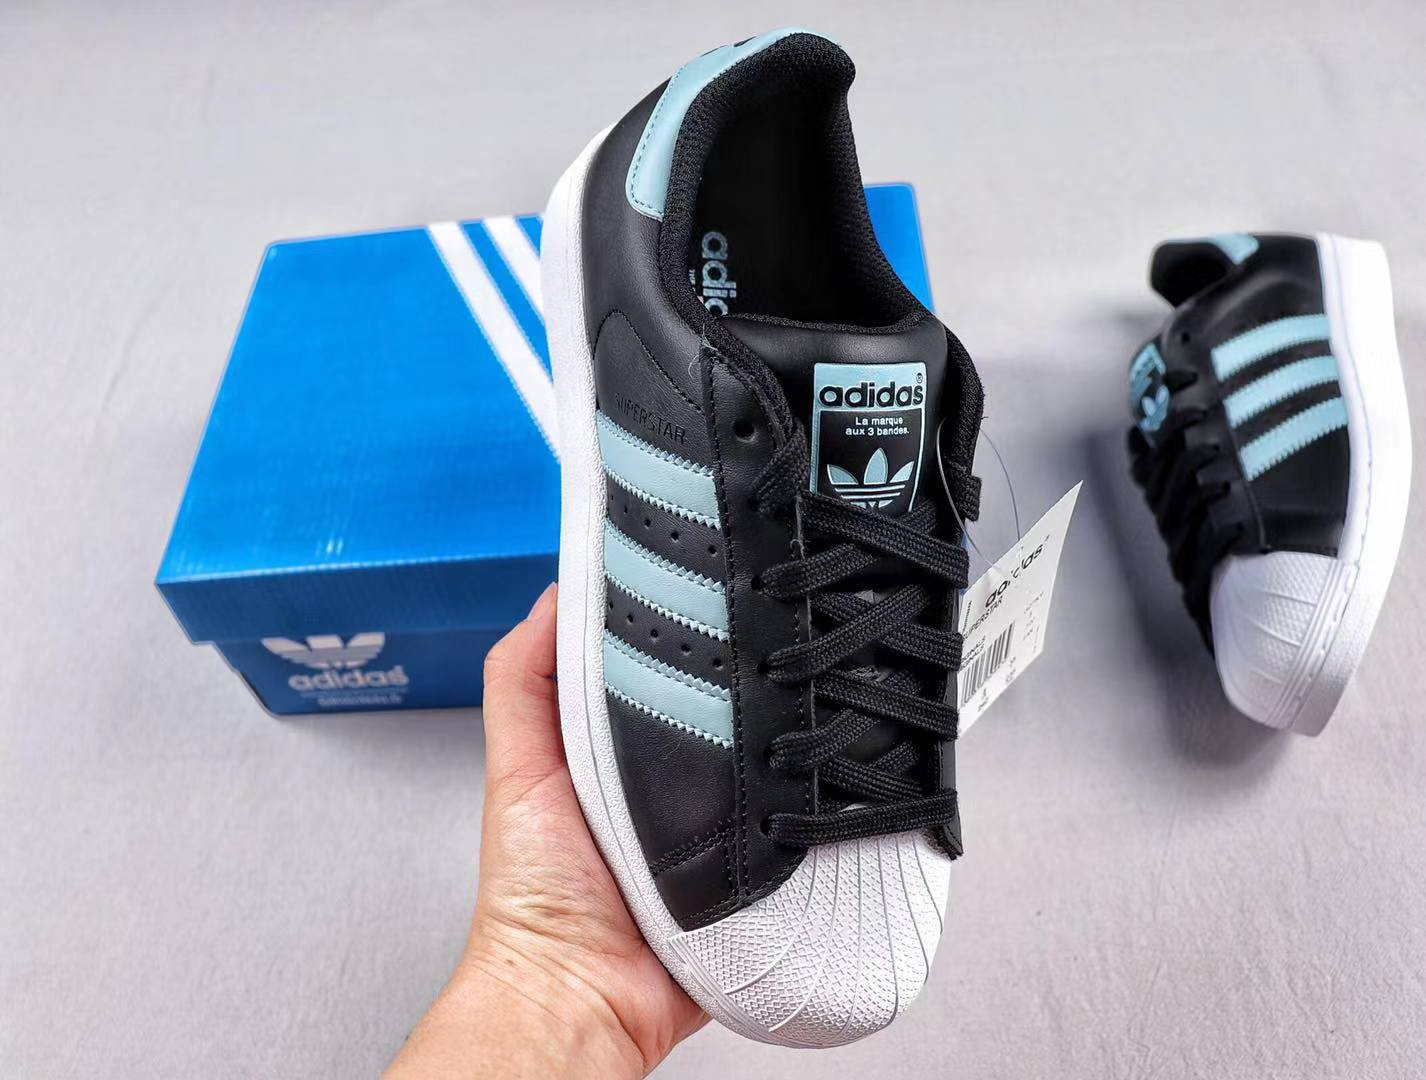 Adidas Superstar Black/Shallow Blue G27808 Leather Sneakers For Sale